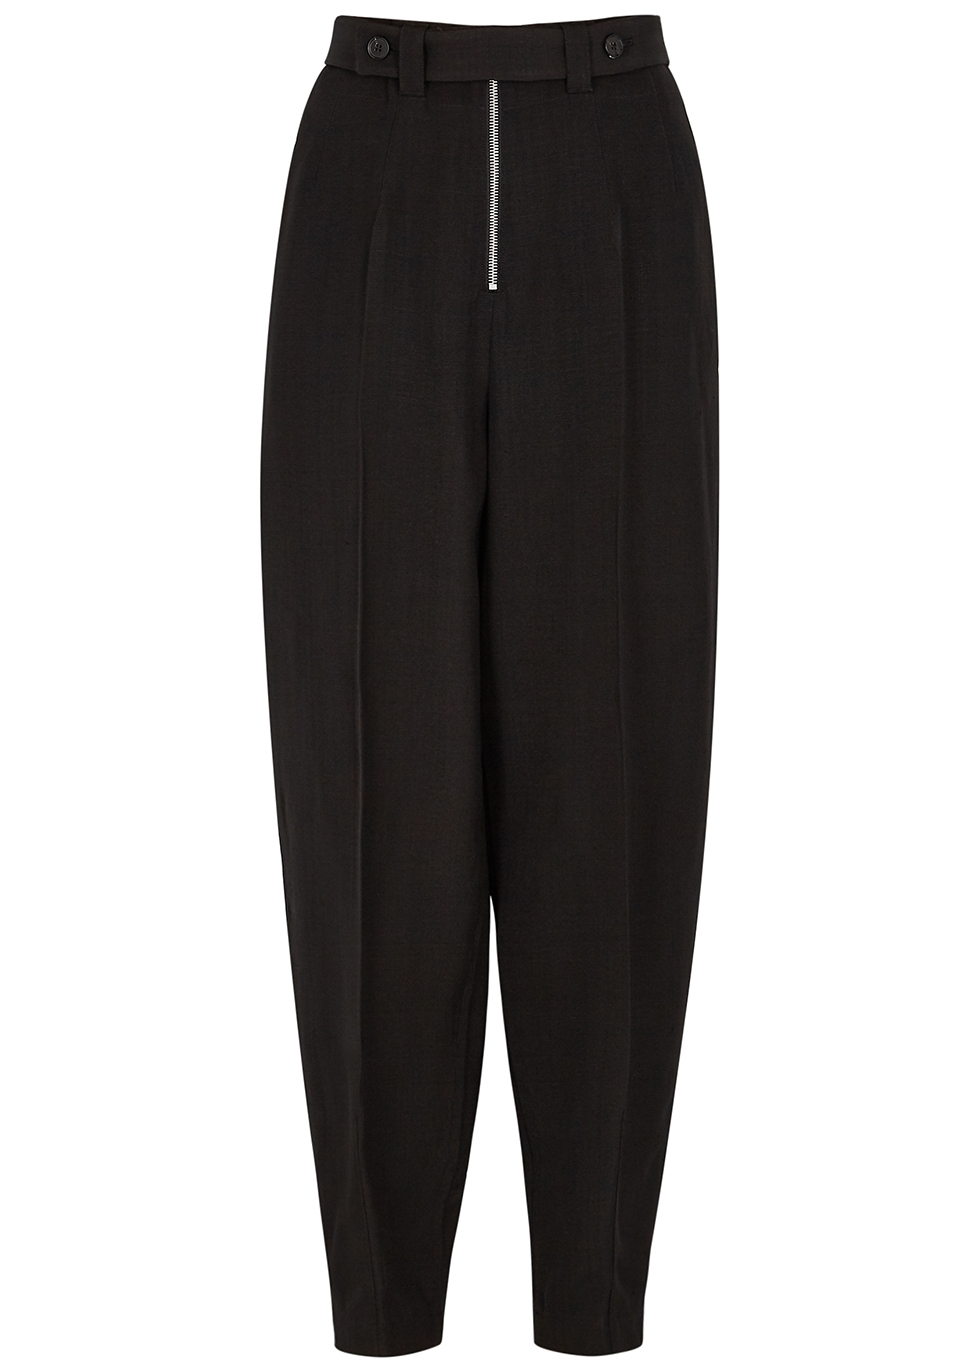 Black tapered-leg trousers